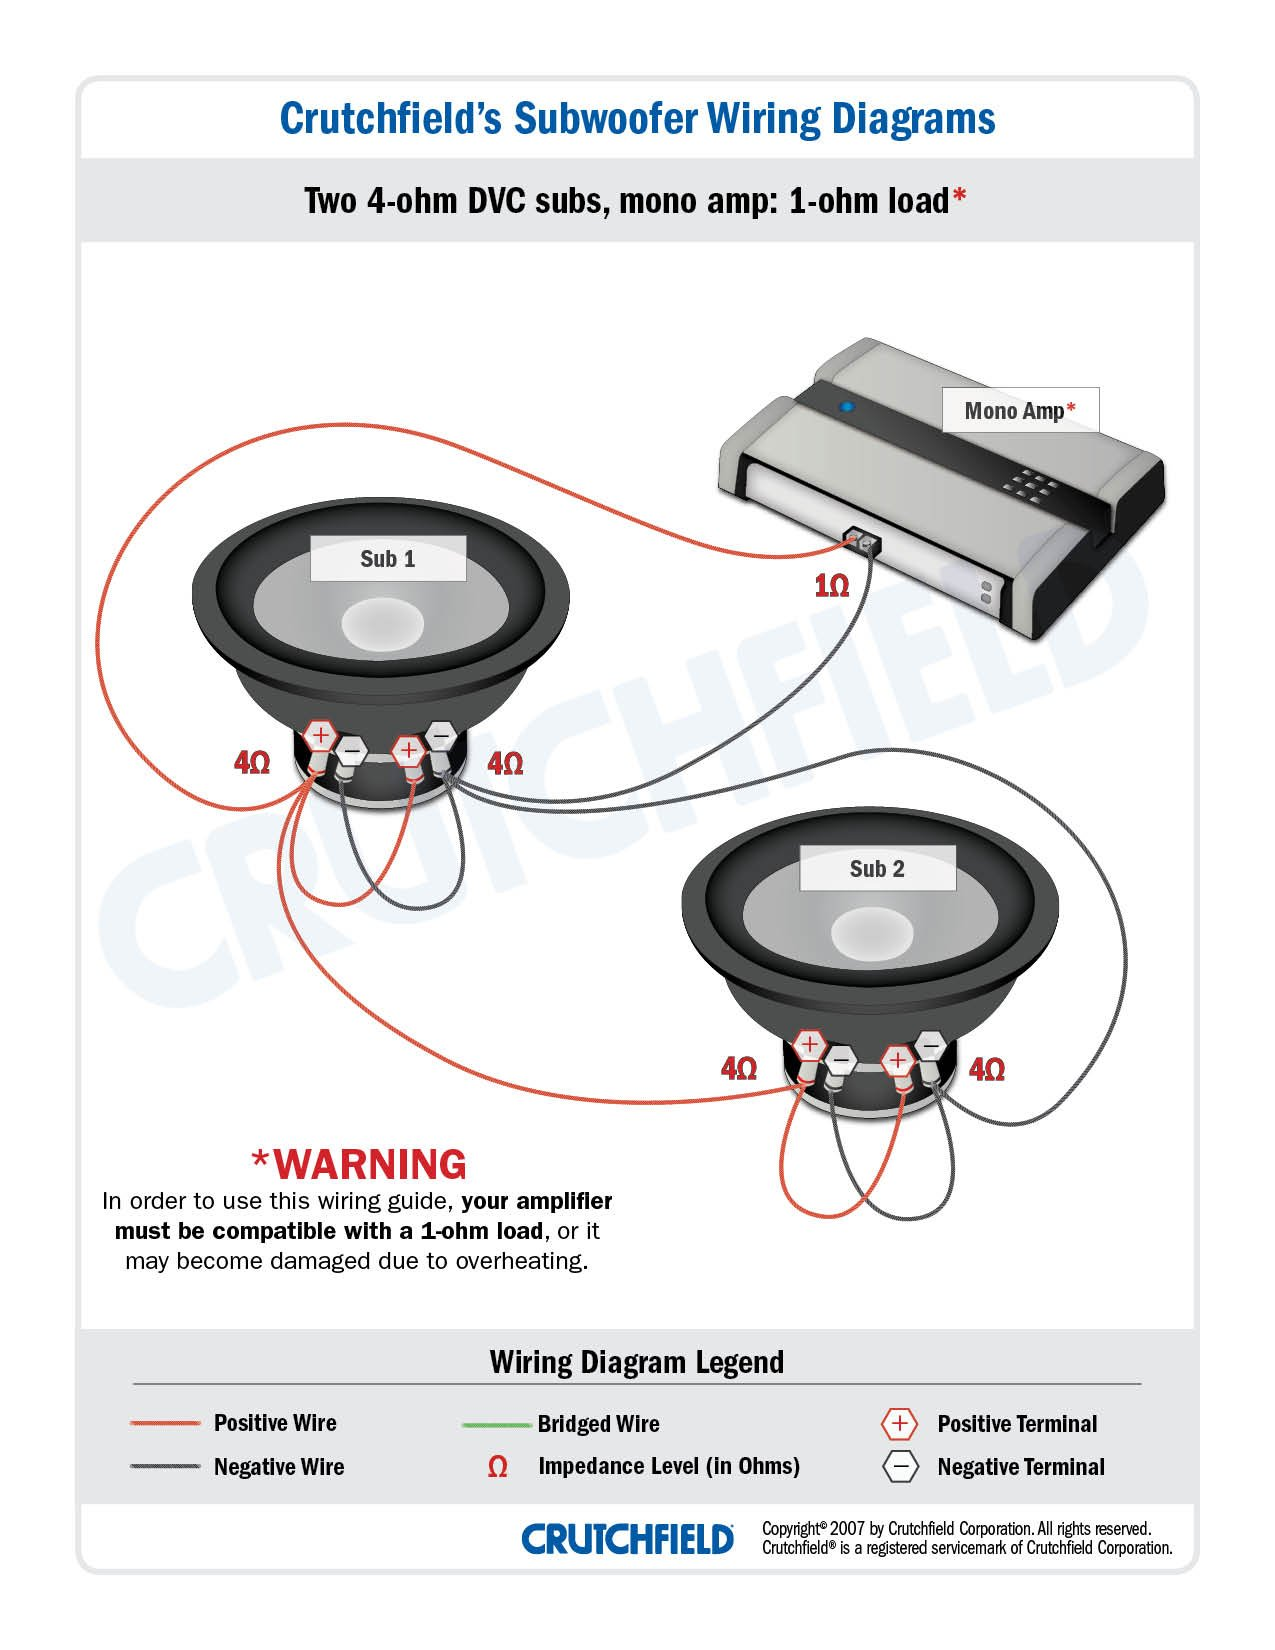 Ups Connection Wiring Diagram Subwoofer Diagrams How To Wire Your Subs In Case The 4 Ohm Scheme Is Only Safe Way Connect That Gear Together